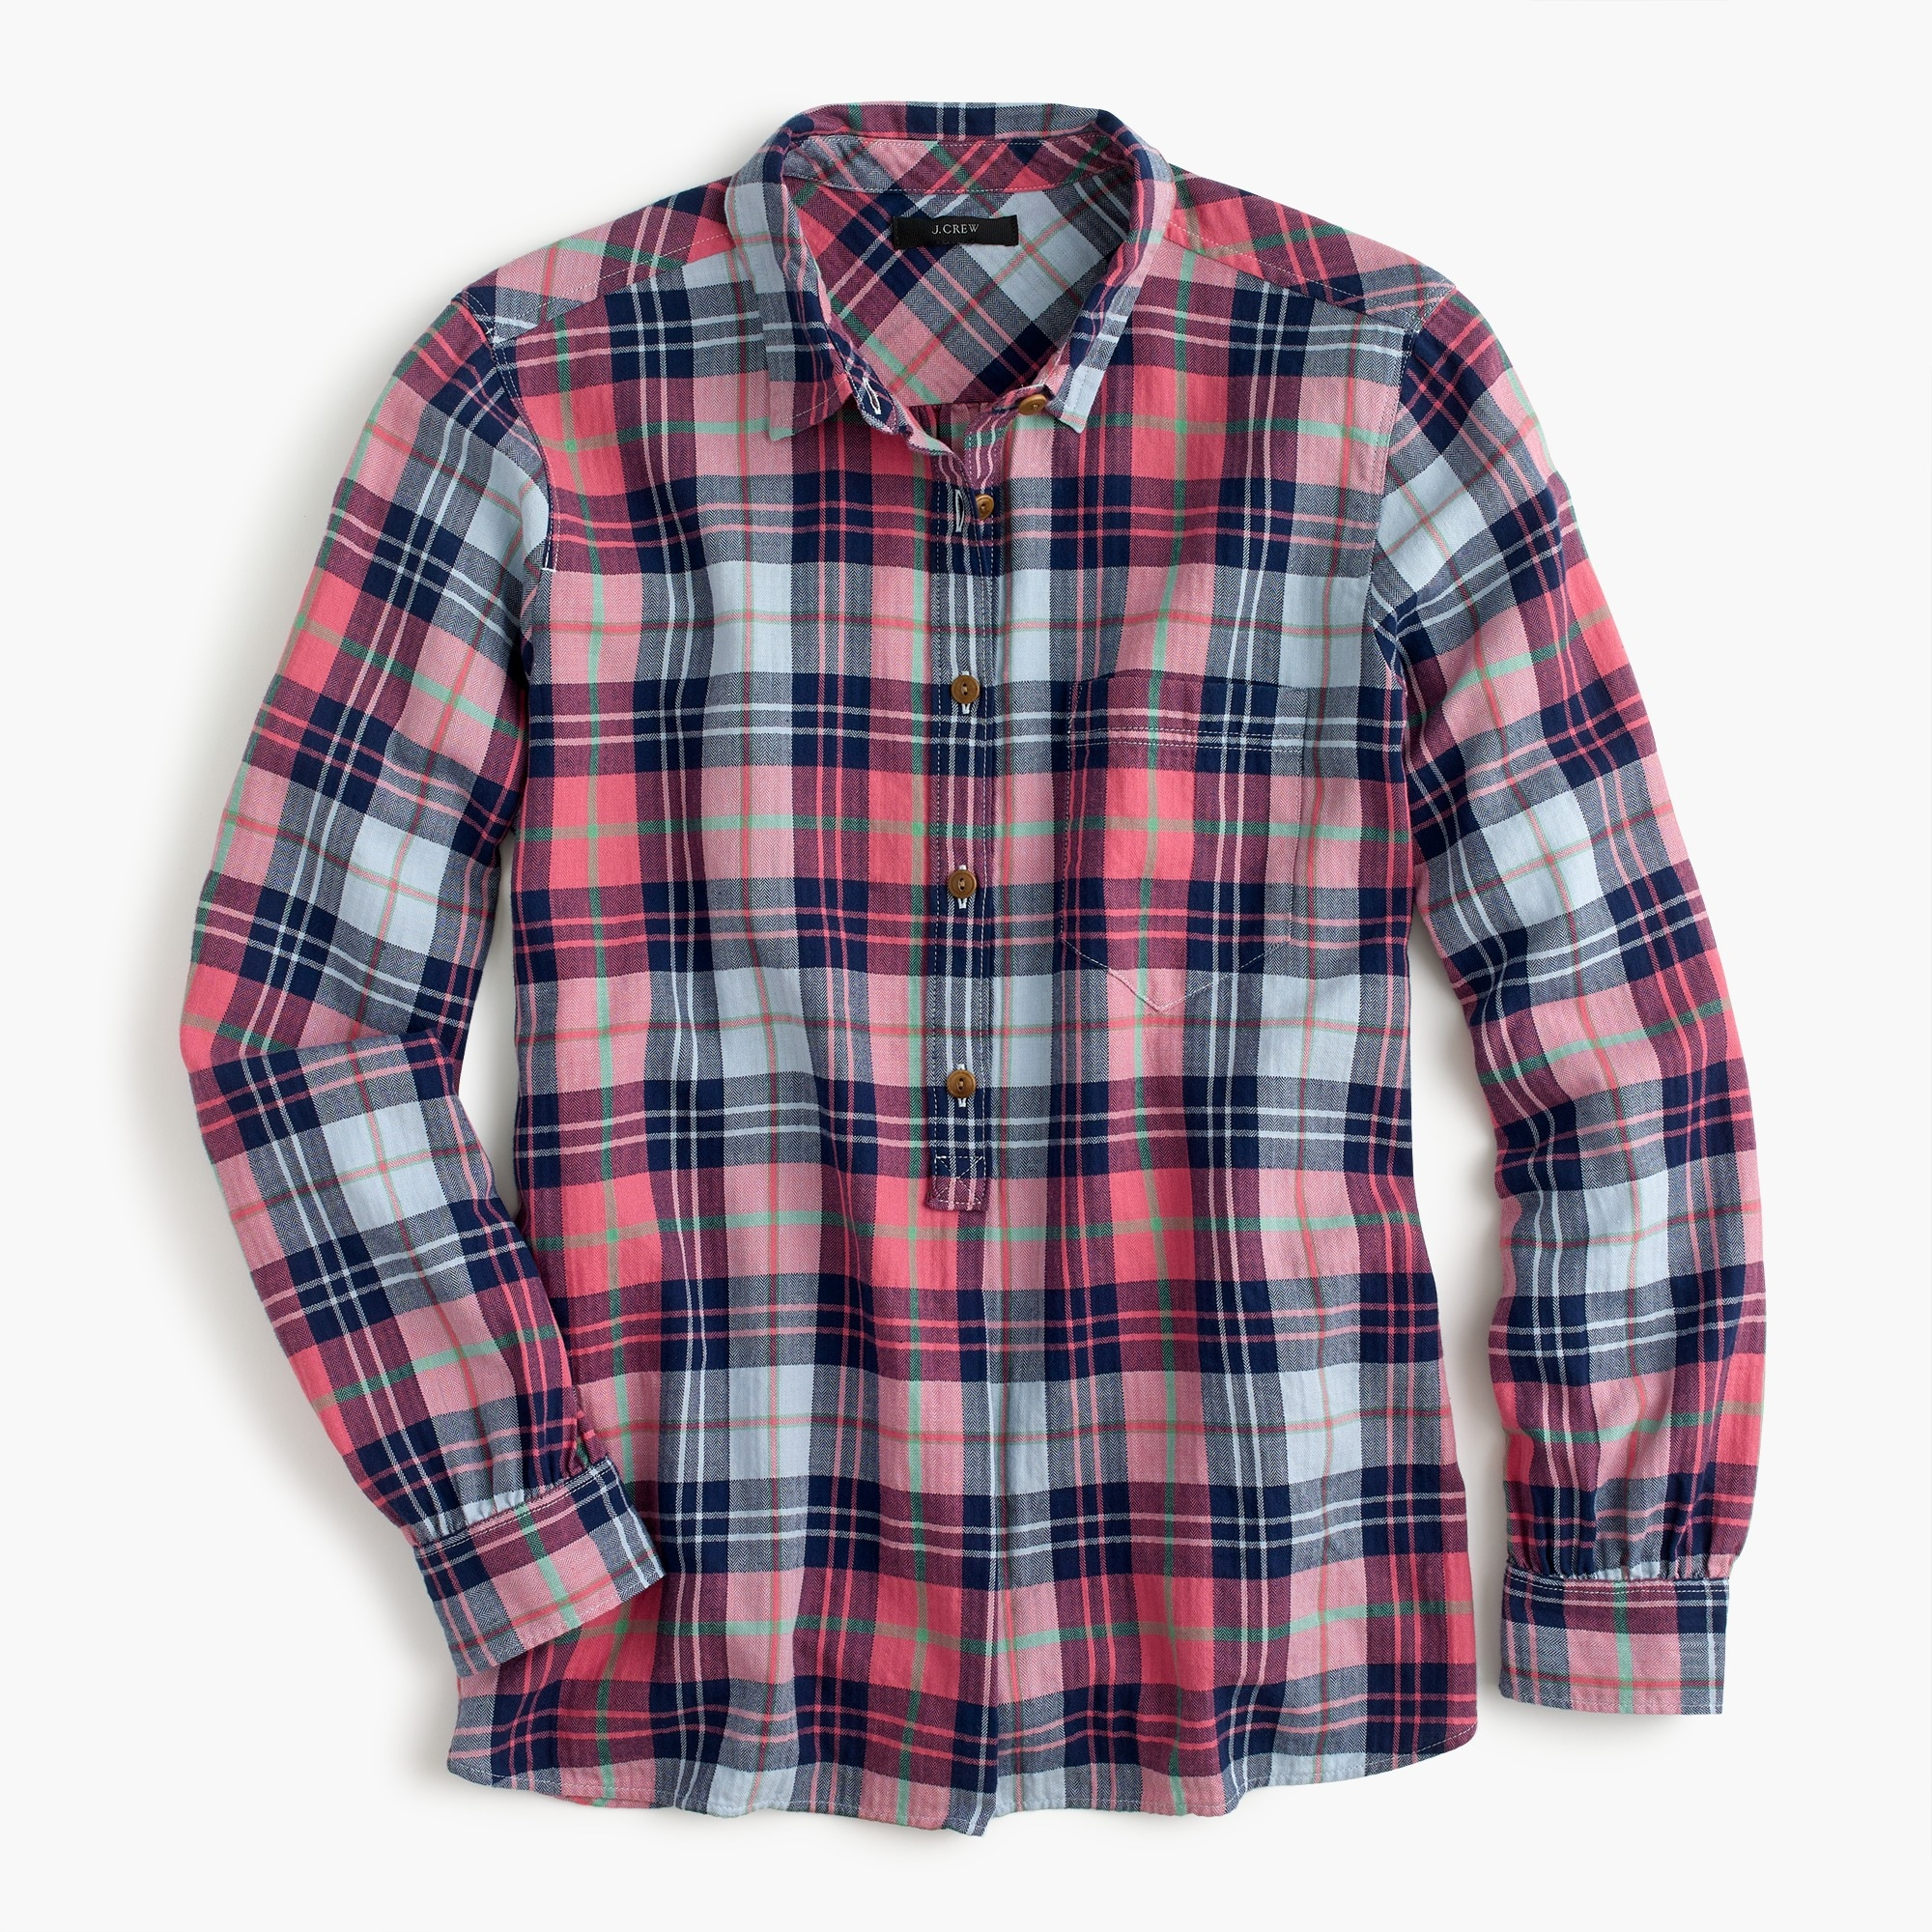 Tall classic popover shirt in smoky coral plaid